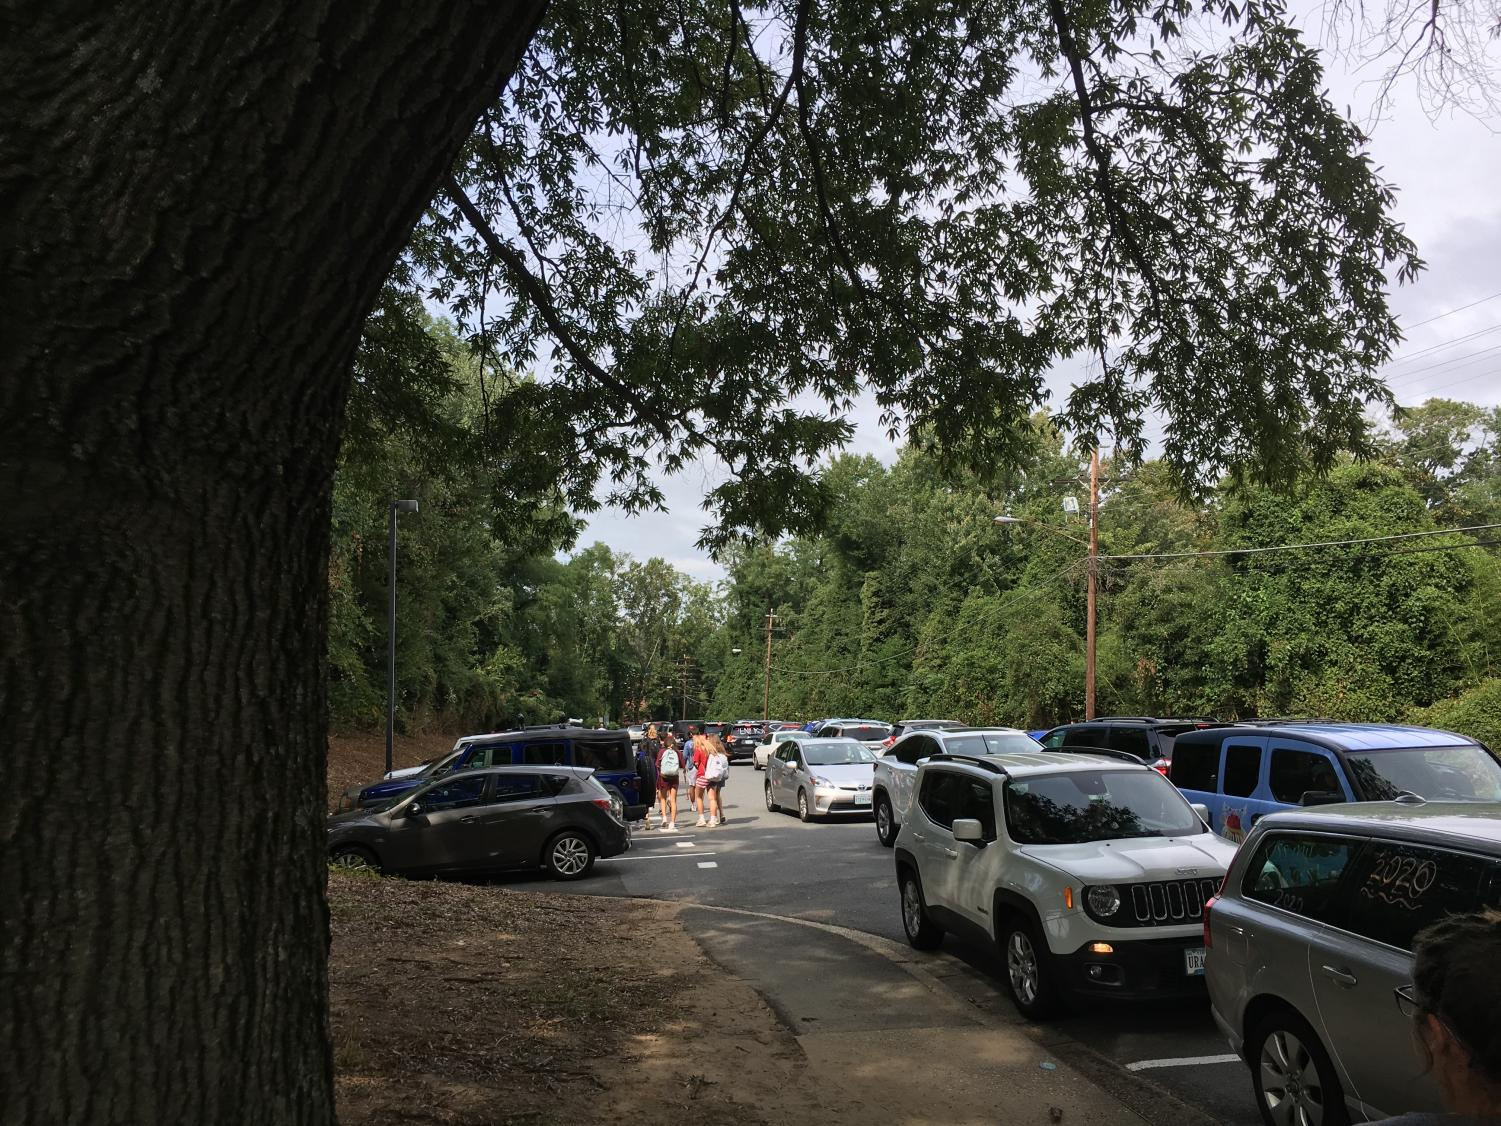 Rush Hour--Students try to drive home in the gridlock that has infiltrated this two-way street. Cars in the new parking spaces are blocked by the long line of vehicles behind them.